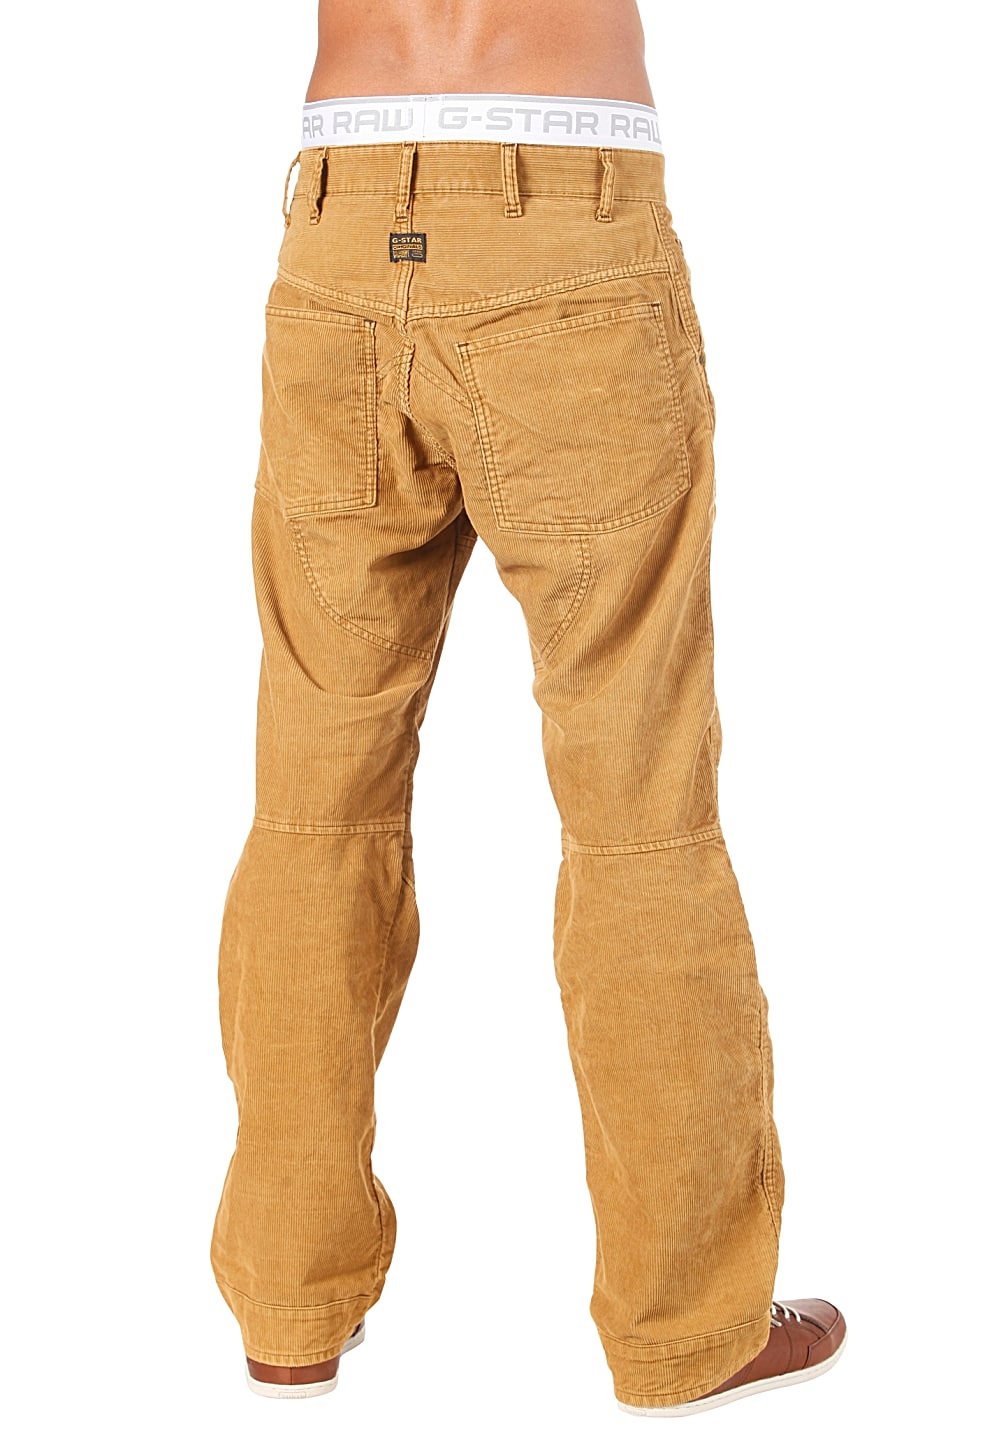 cd493347de9e G-STAR RAW 5620 3D Loose Coj Pant - Hose für Herren - Braun - Planet ...